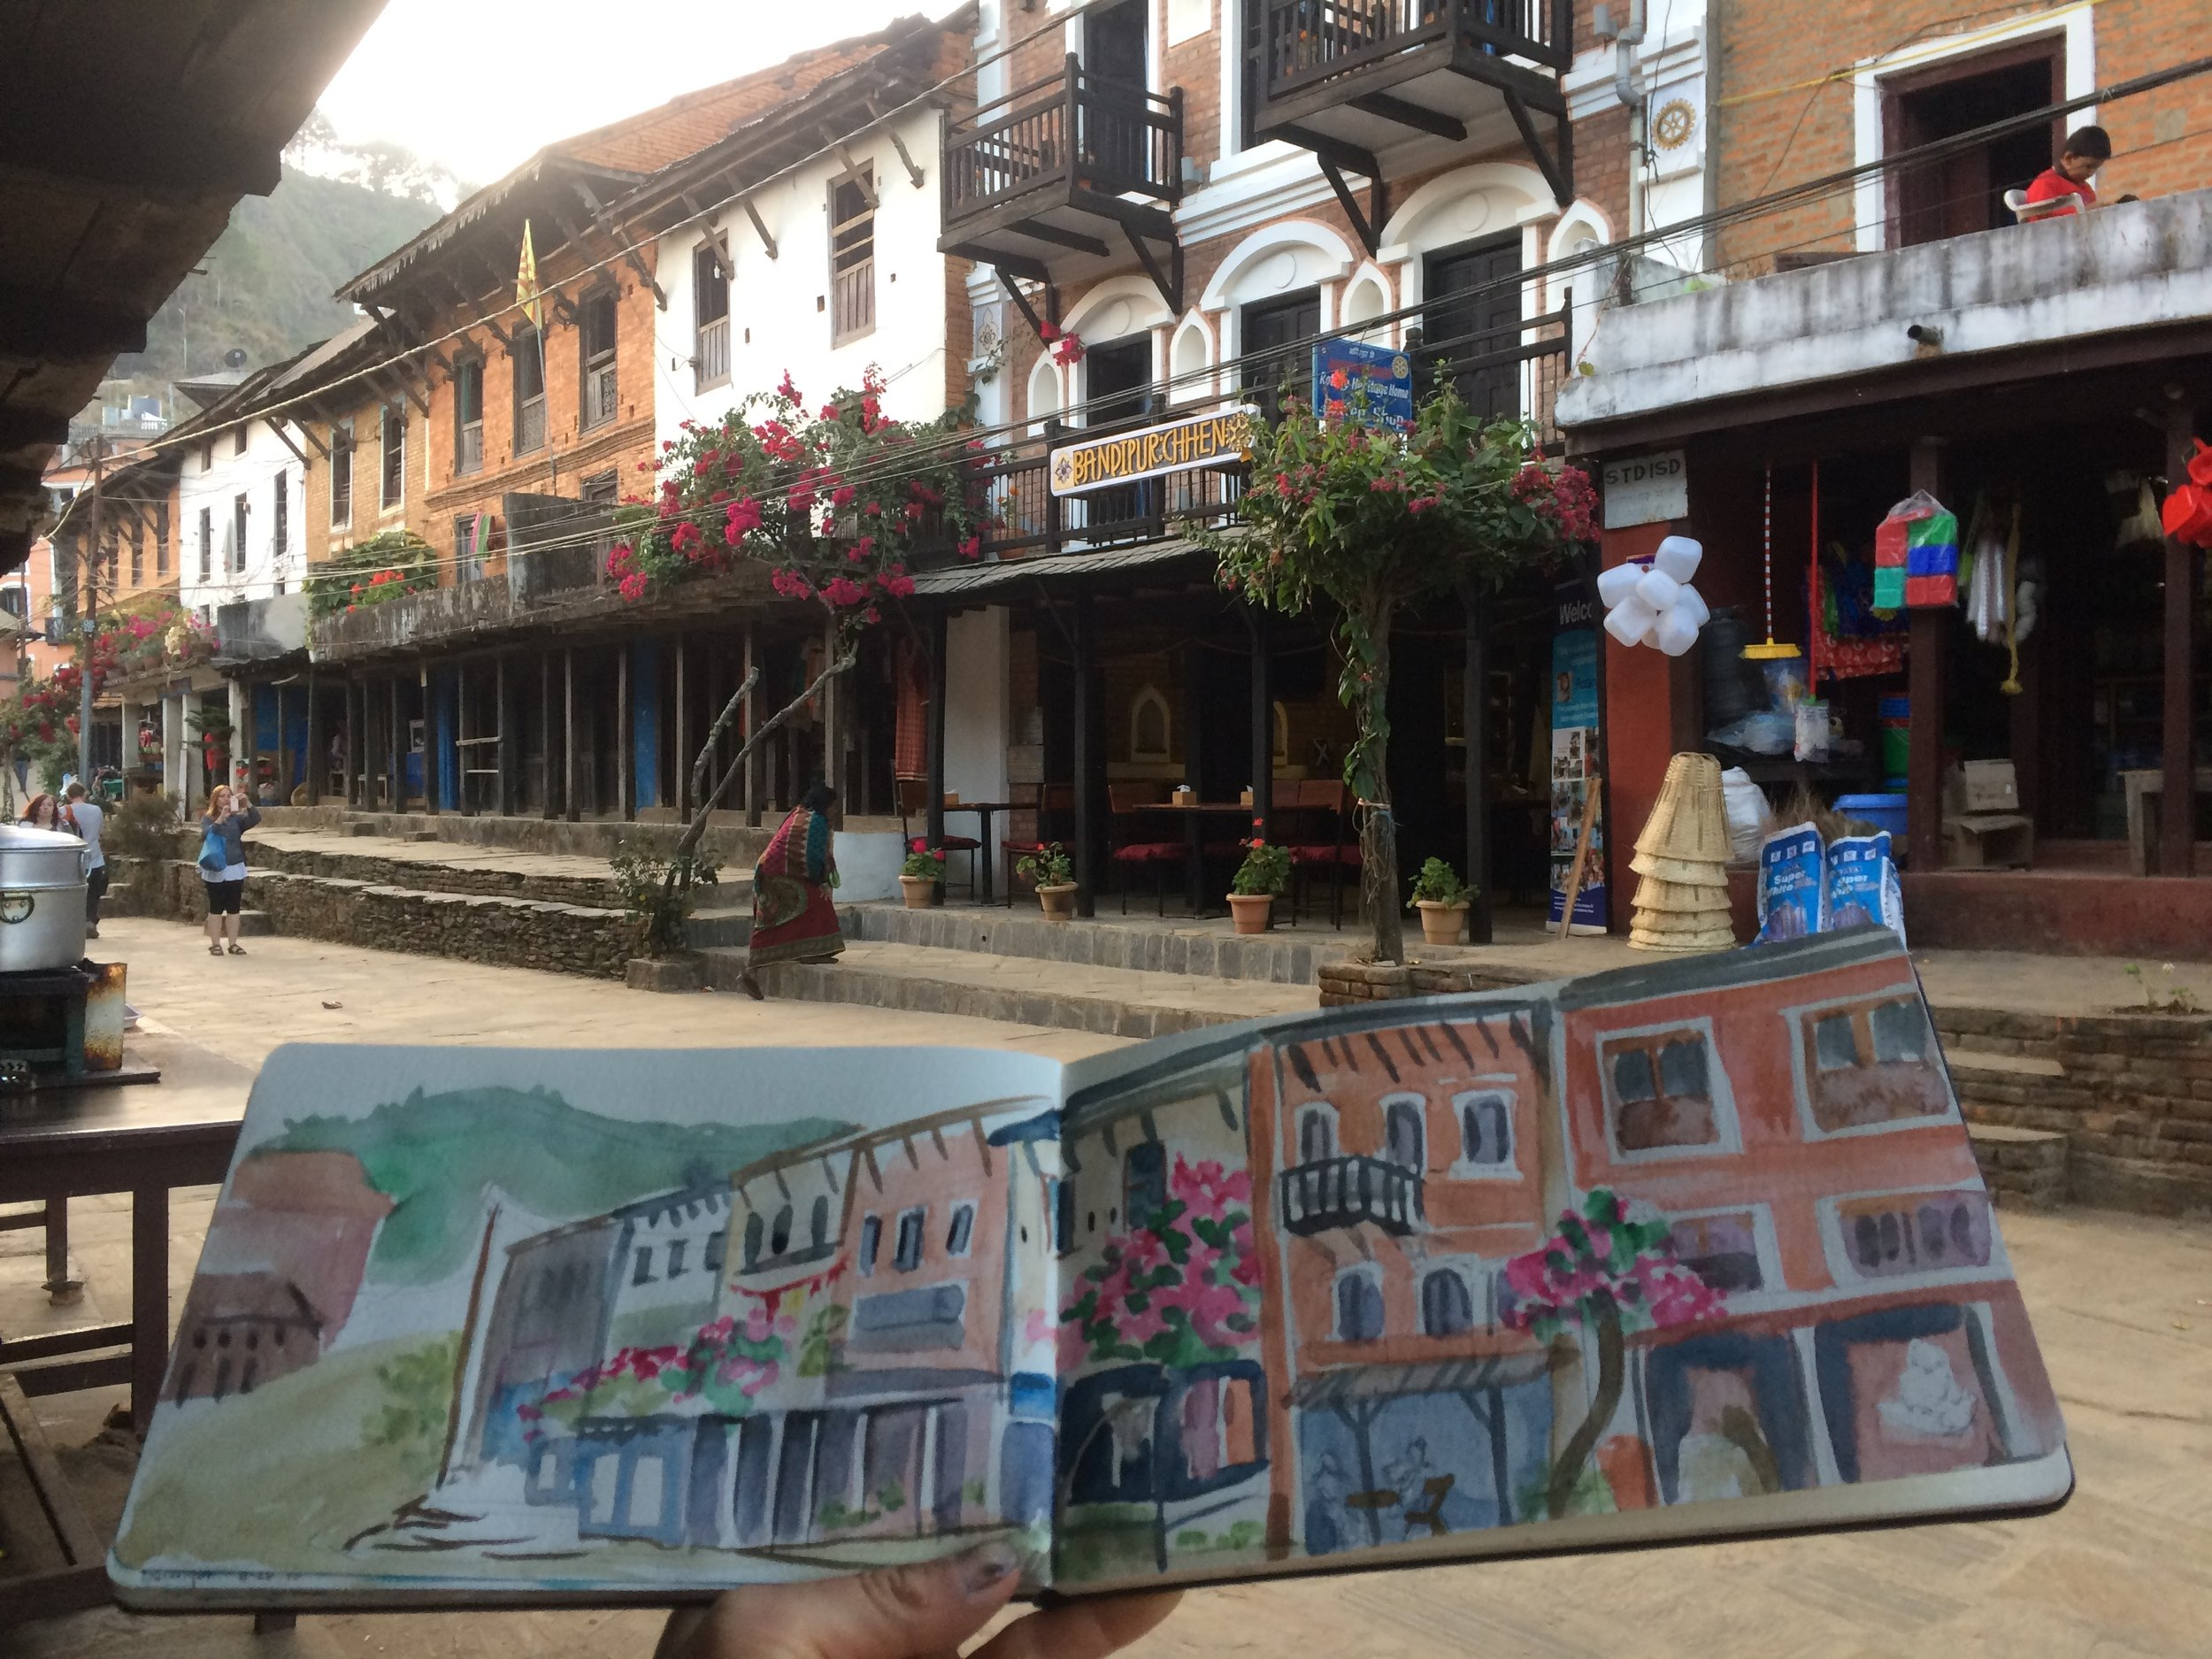 Bandipur, Nepal - A New Orleans vibe in the Himalaya!